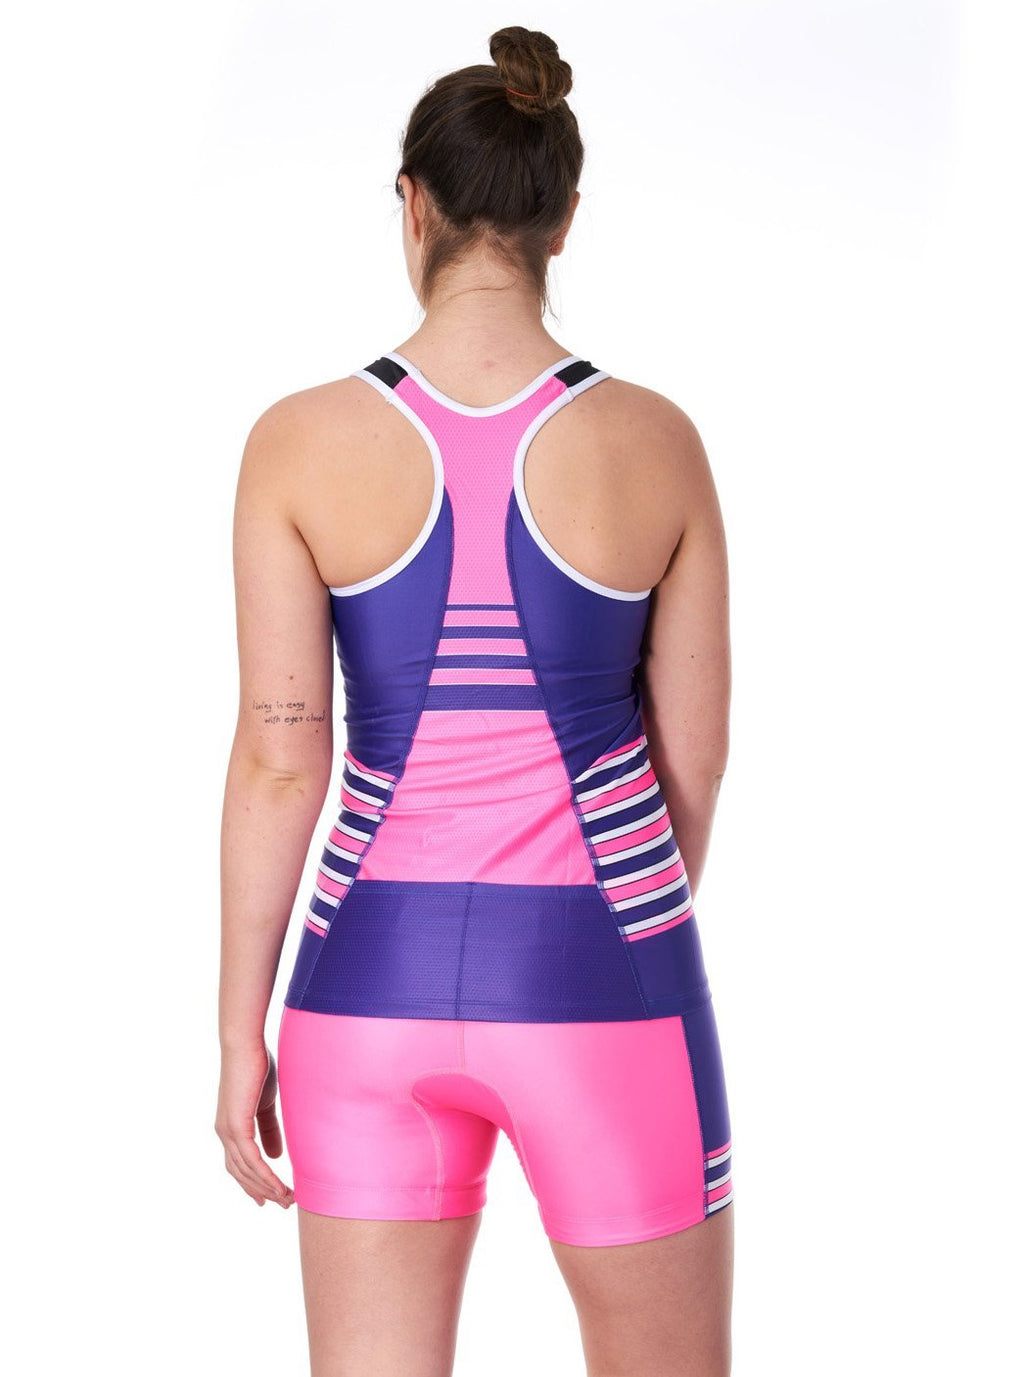 Coeur Sports Triathlon Tank Top Women's Braless Triathlon Top in Pop Tart